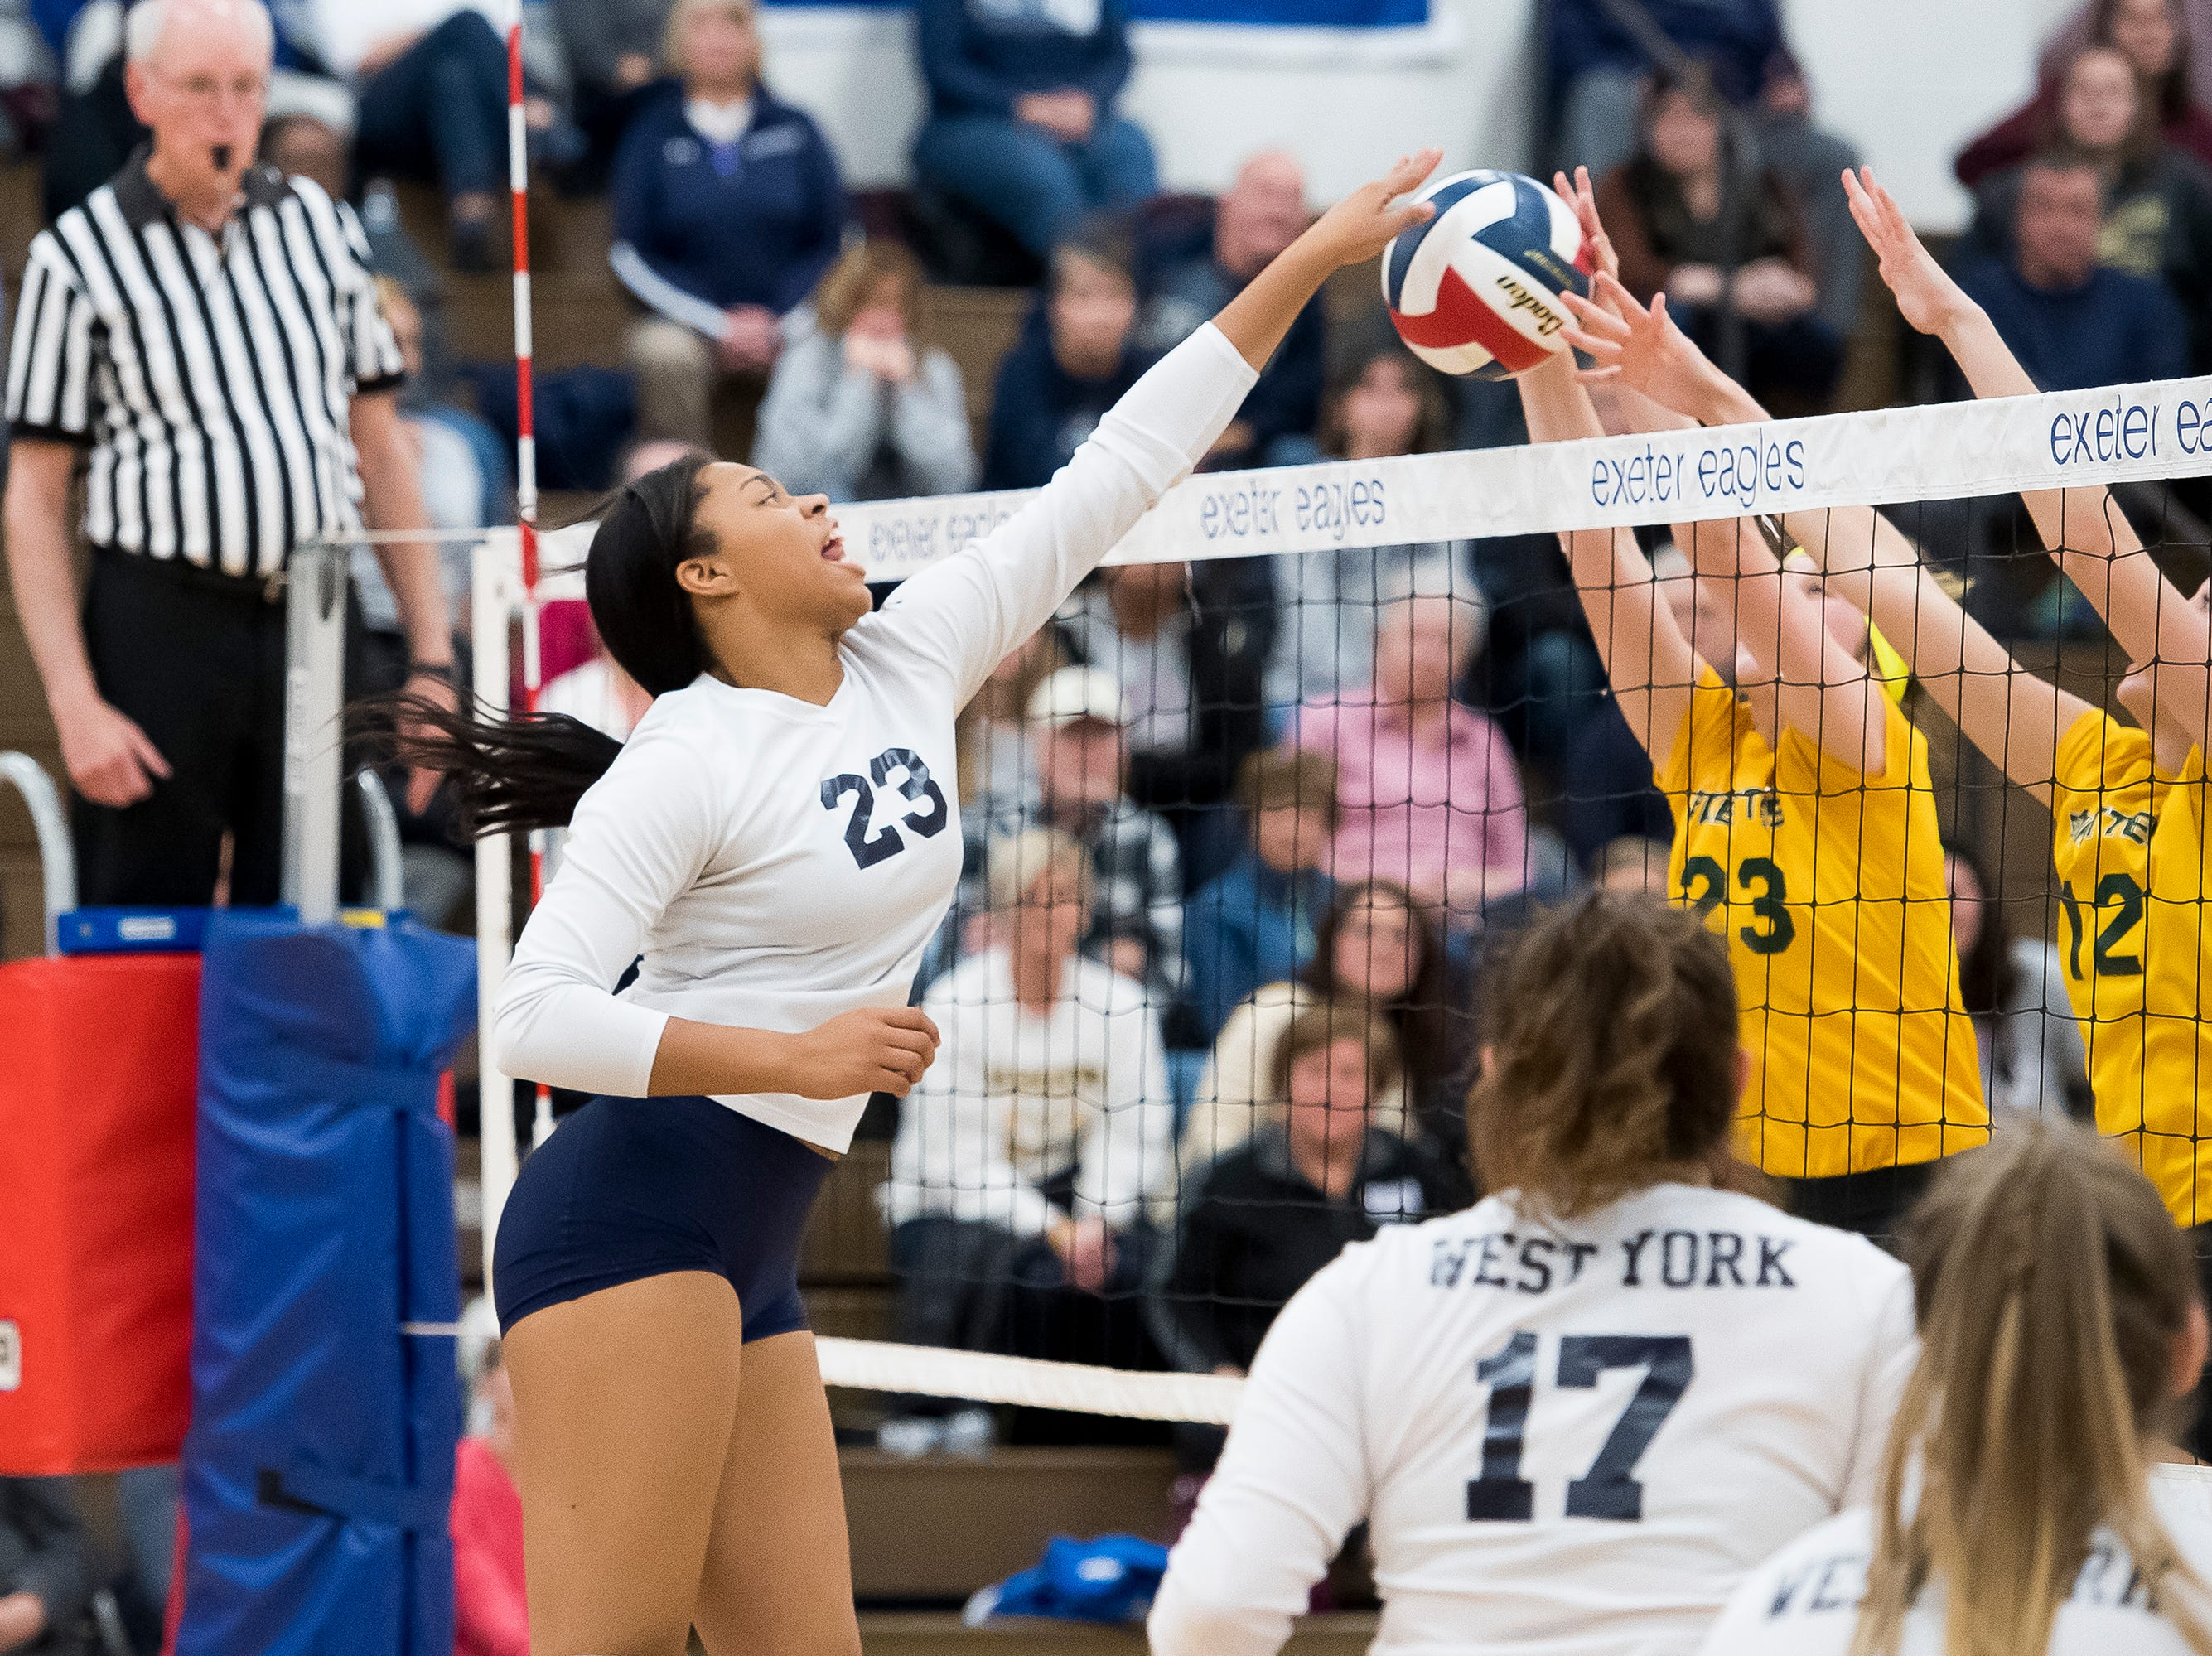 West York's Alayna Harris hits the ball over the net to Allentown Central Catholic in a PIAA 3A semifinal game at Exeter Township High School in Reading on Tuesday, November 13, 2018.